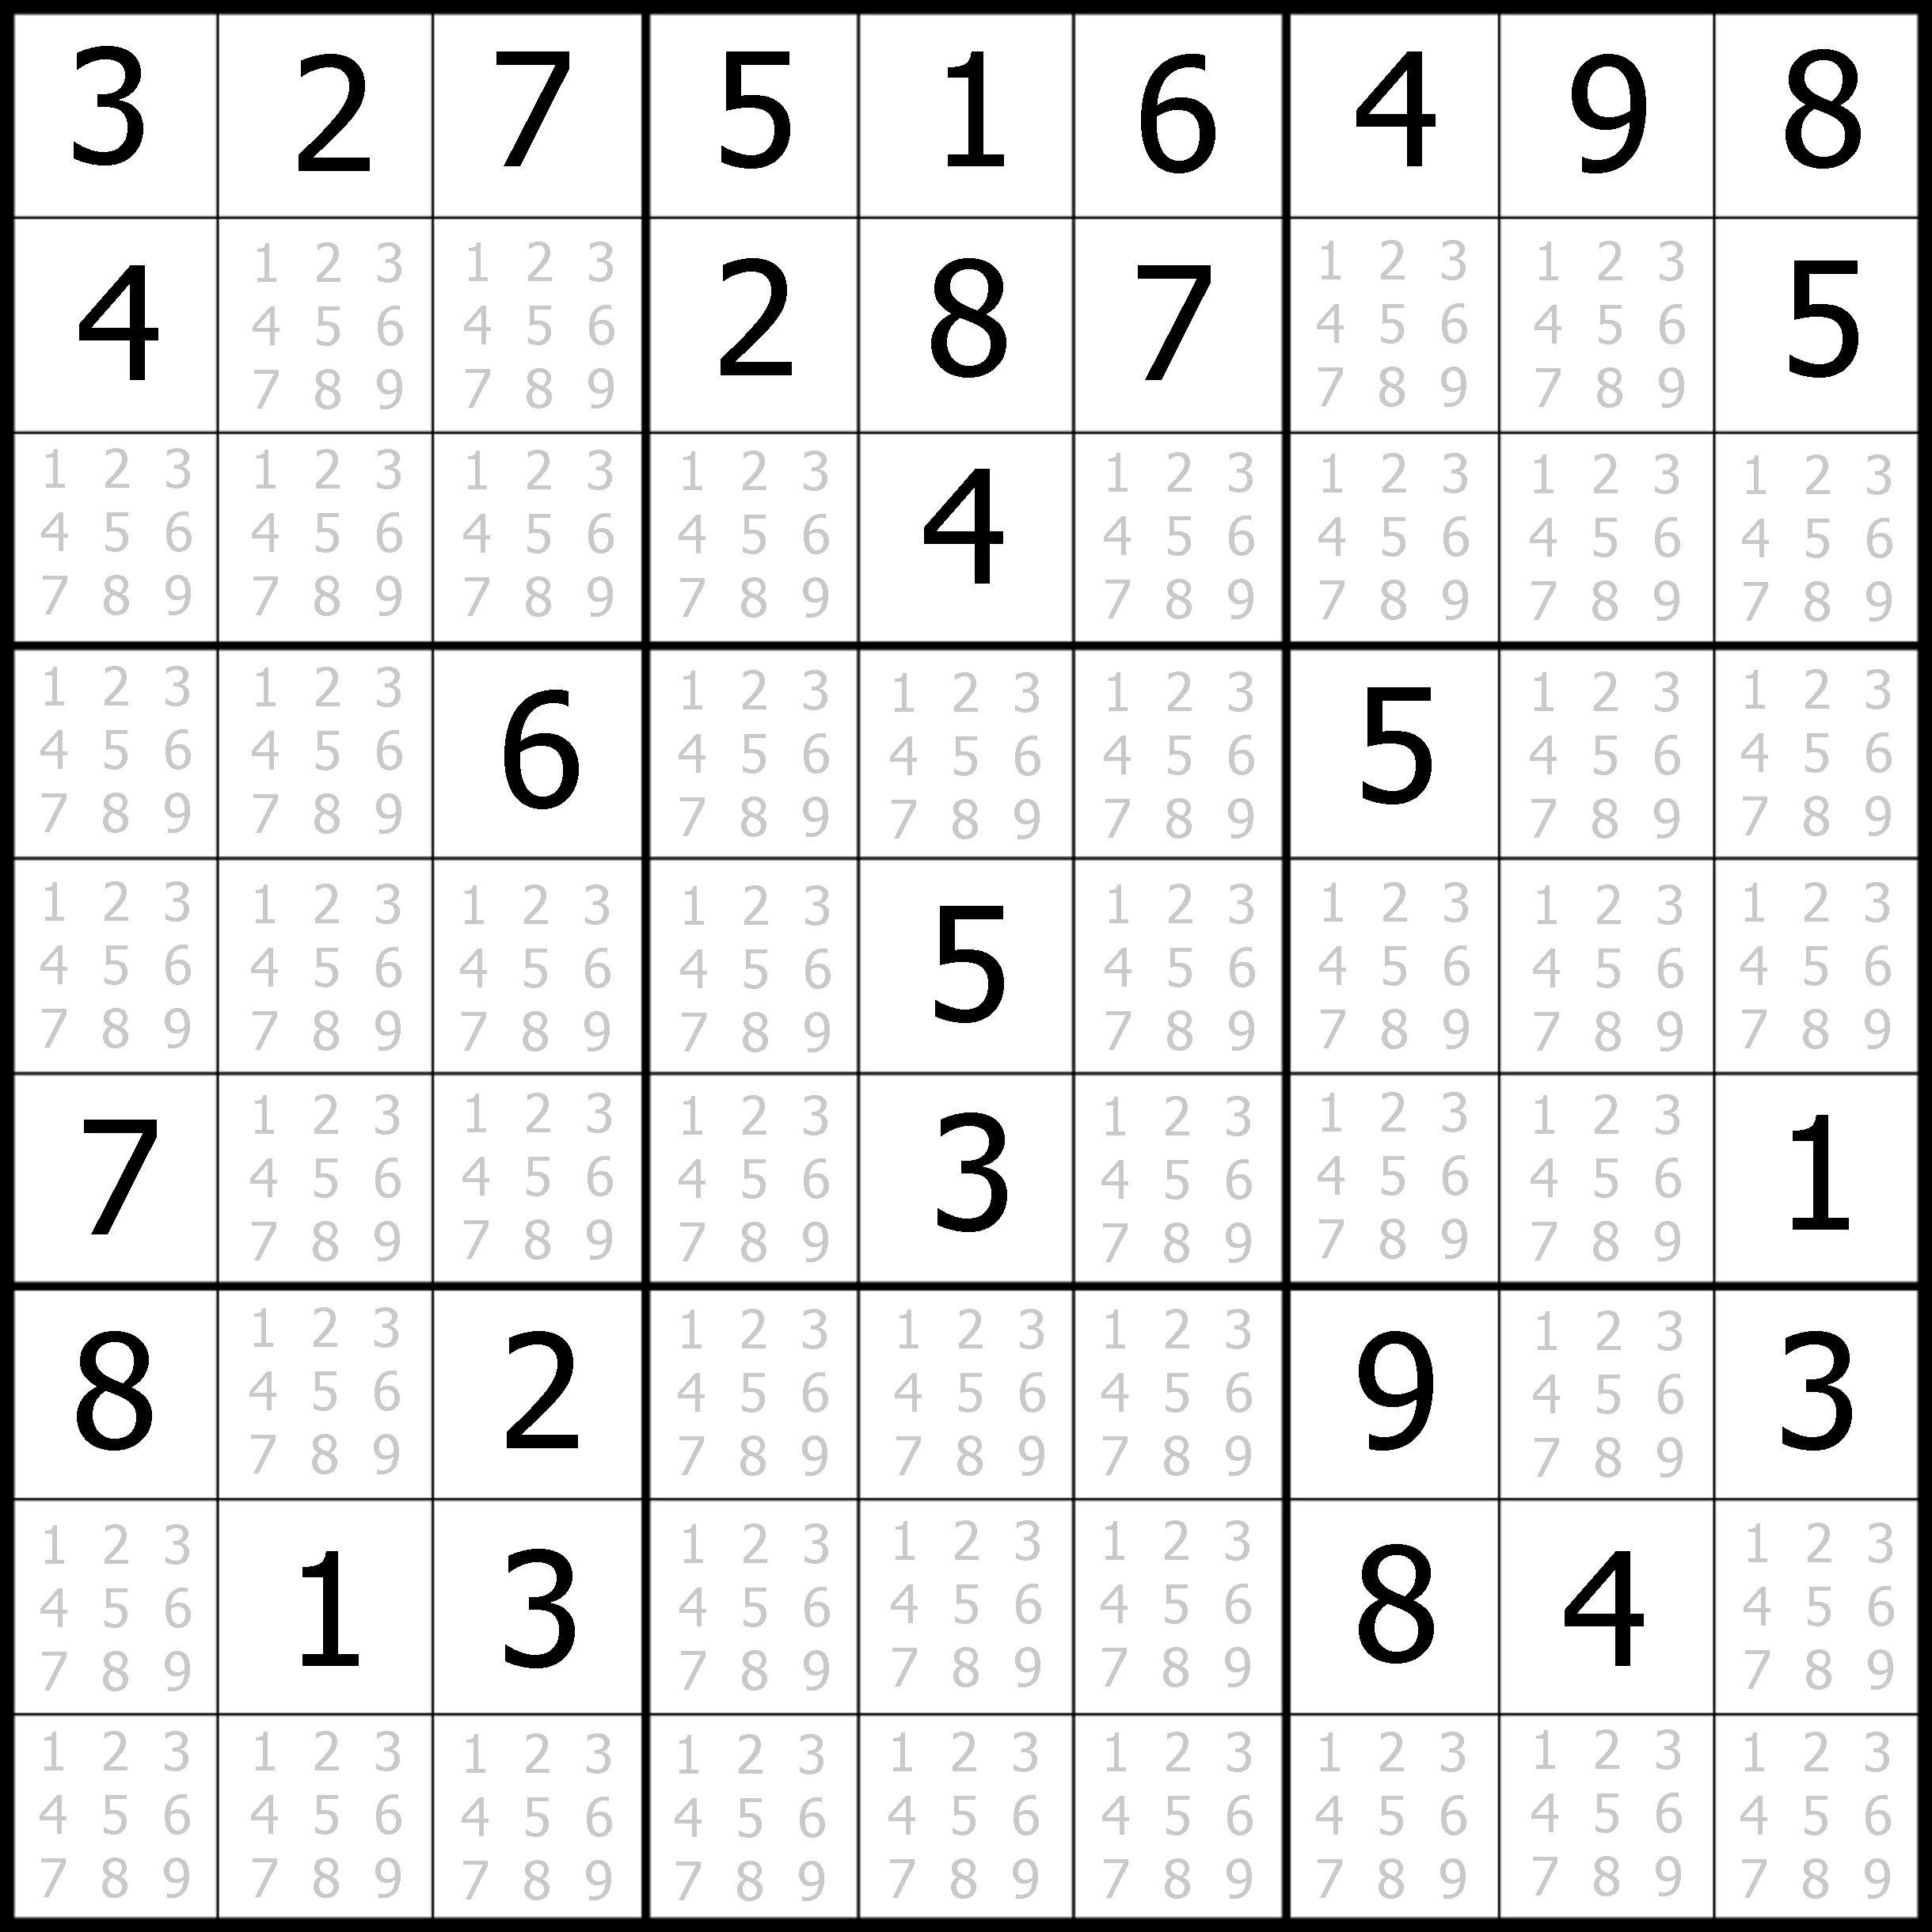 Sudoku Printable | Free, Medium, Printable Sudoku Puzzle #1 | My - Printable Sudoku Puzzles Easy #1 Answers